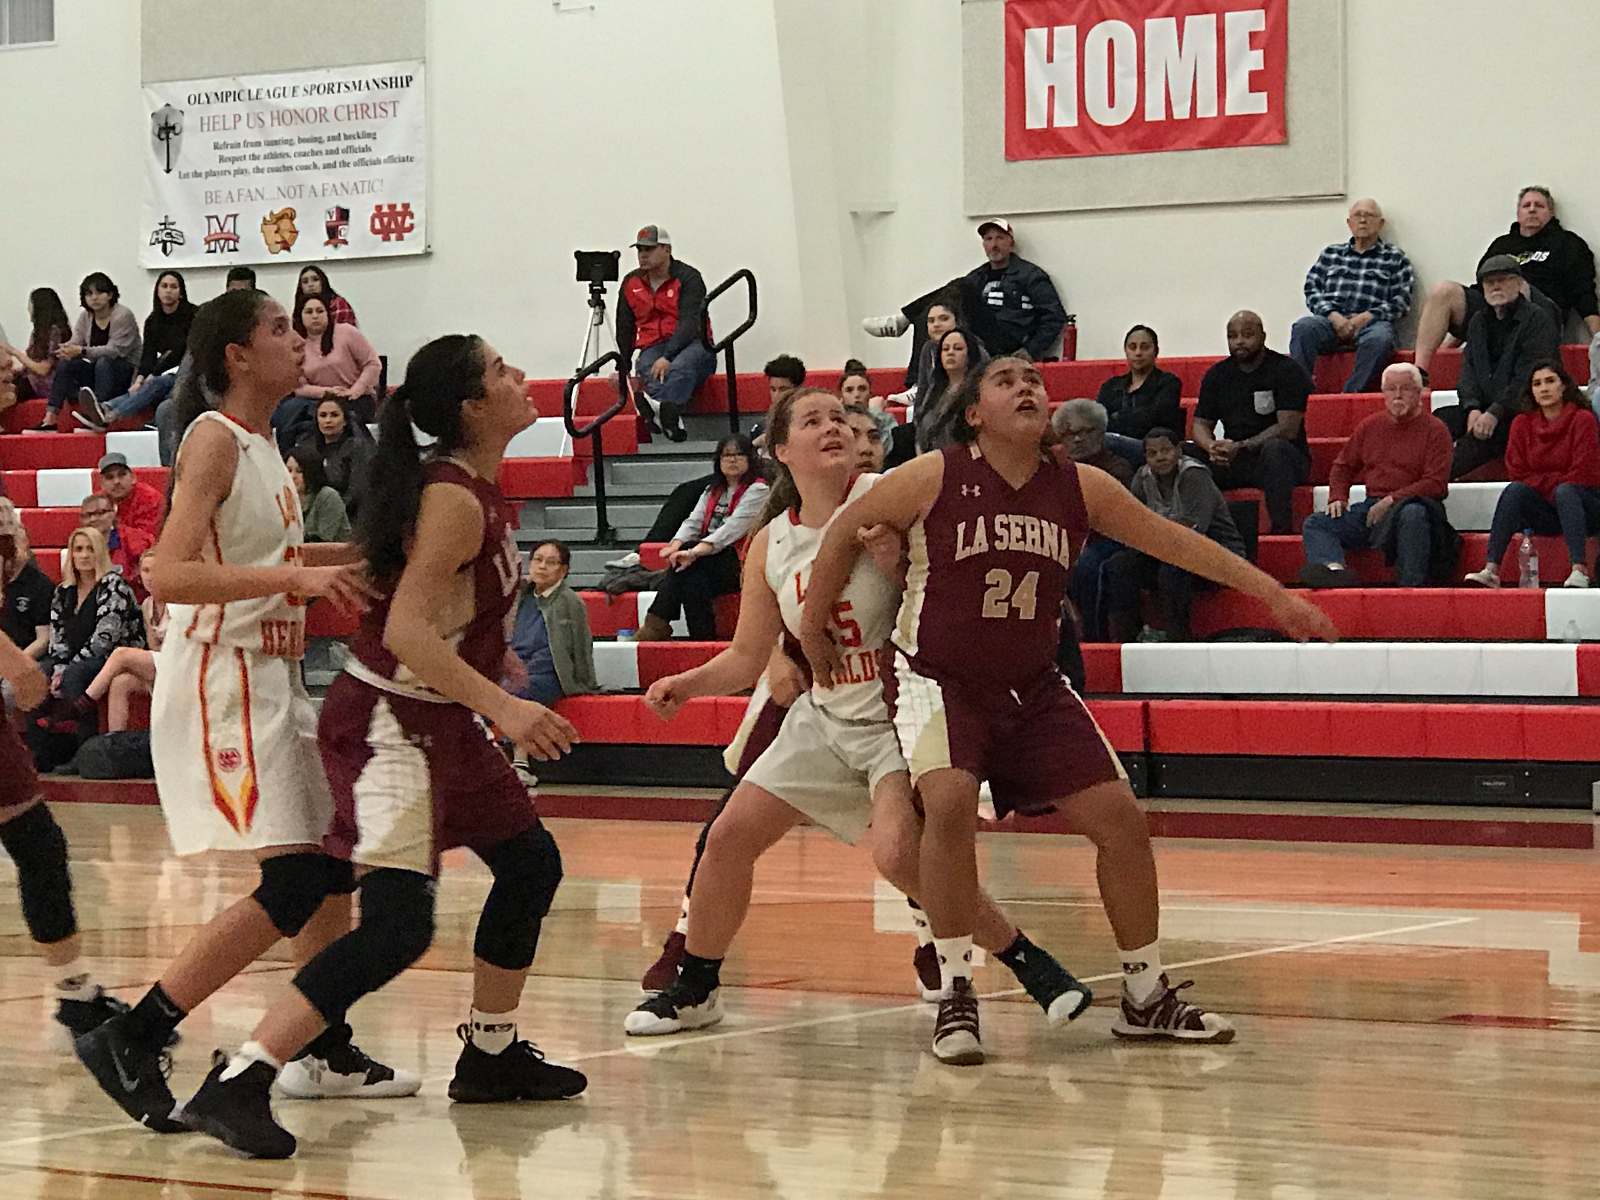 Lady Heralds earn 53-42 victory over La Serna High